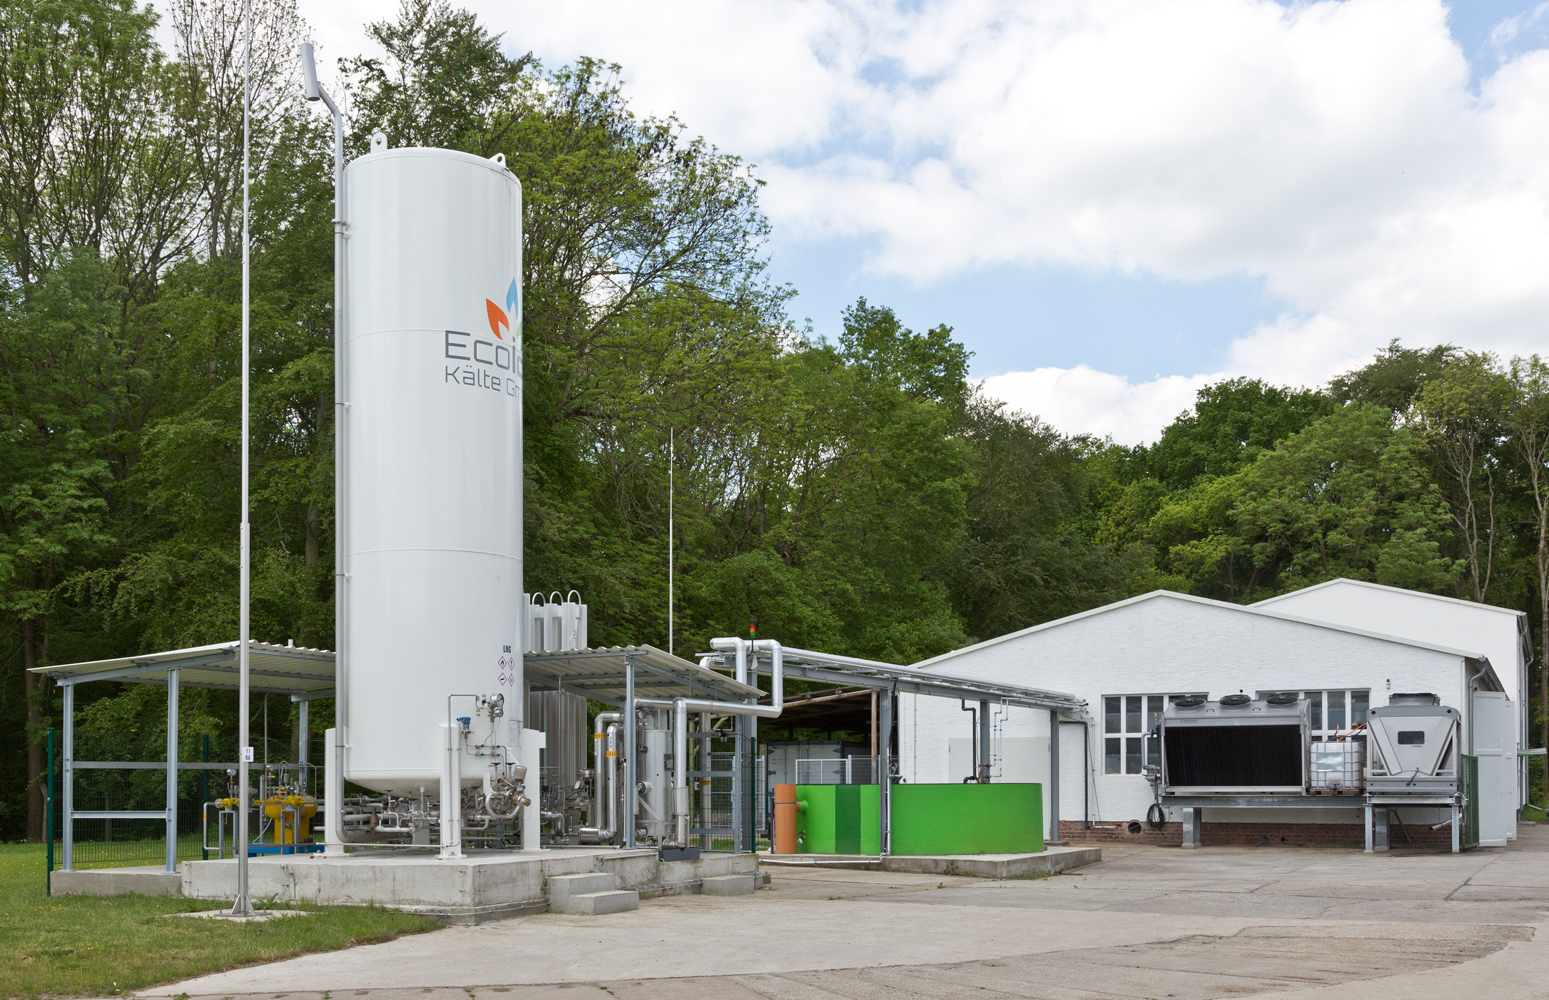 System for regasification on the Eco ice Kälte GmbH premises